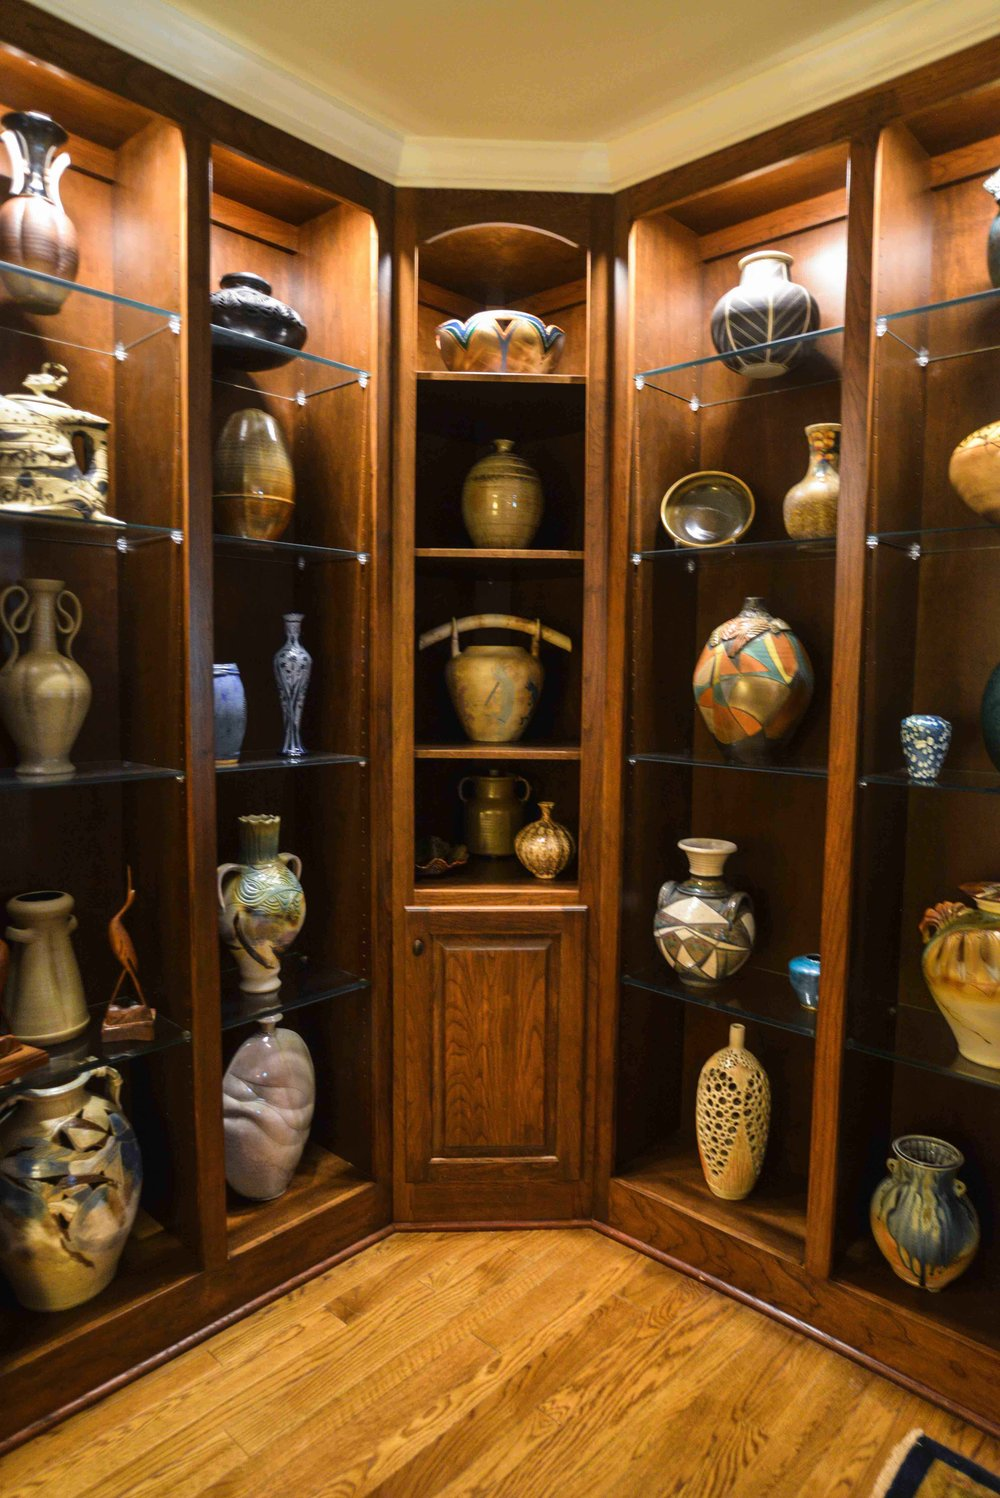 180 Spaces | Interior Design Turnarounds.... Custom designed walnut display cabinet for a special client's pottery collection from Seagrove, NC